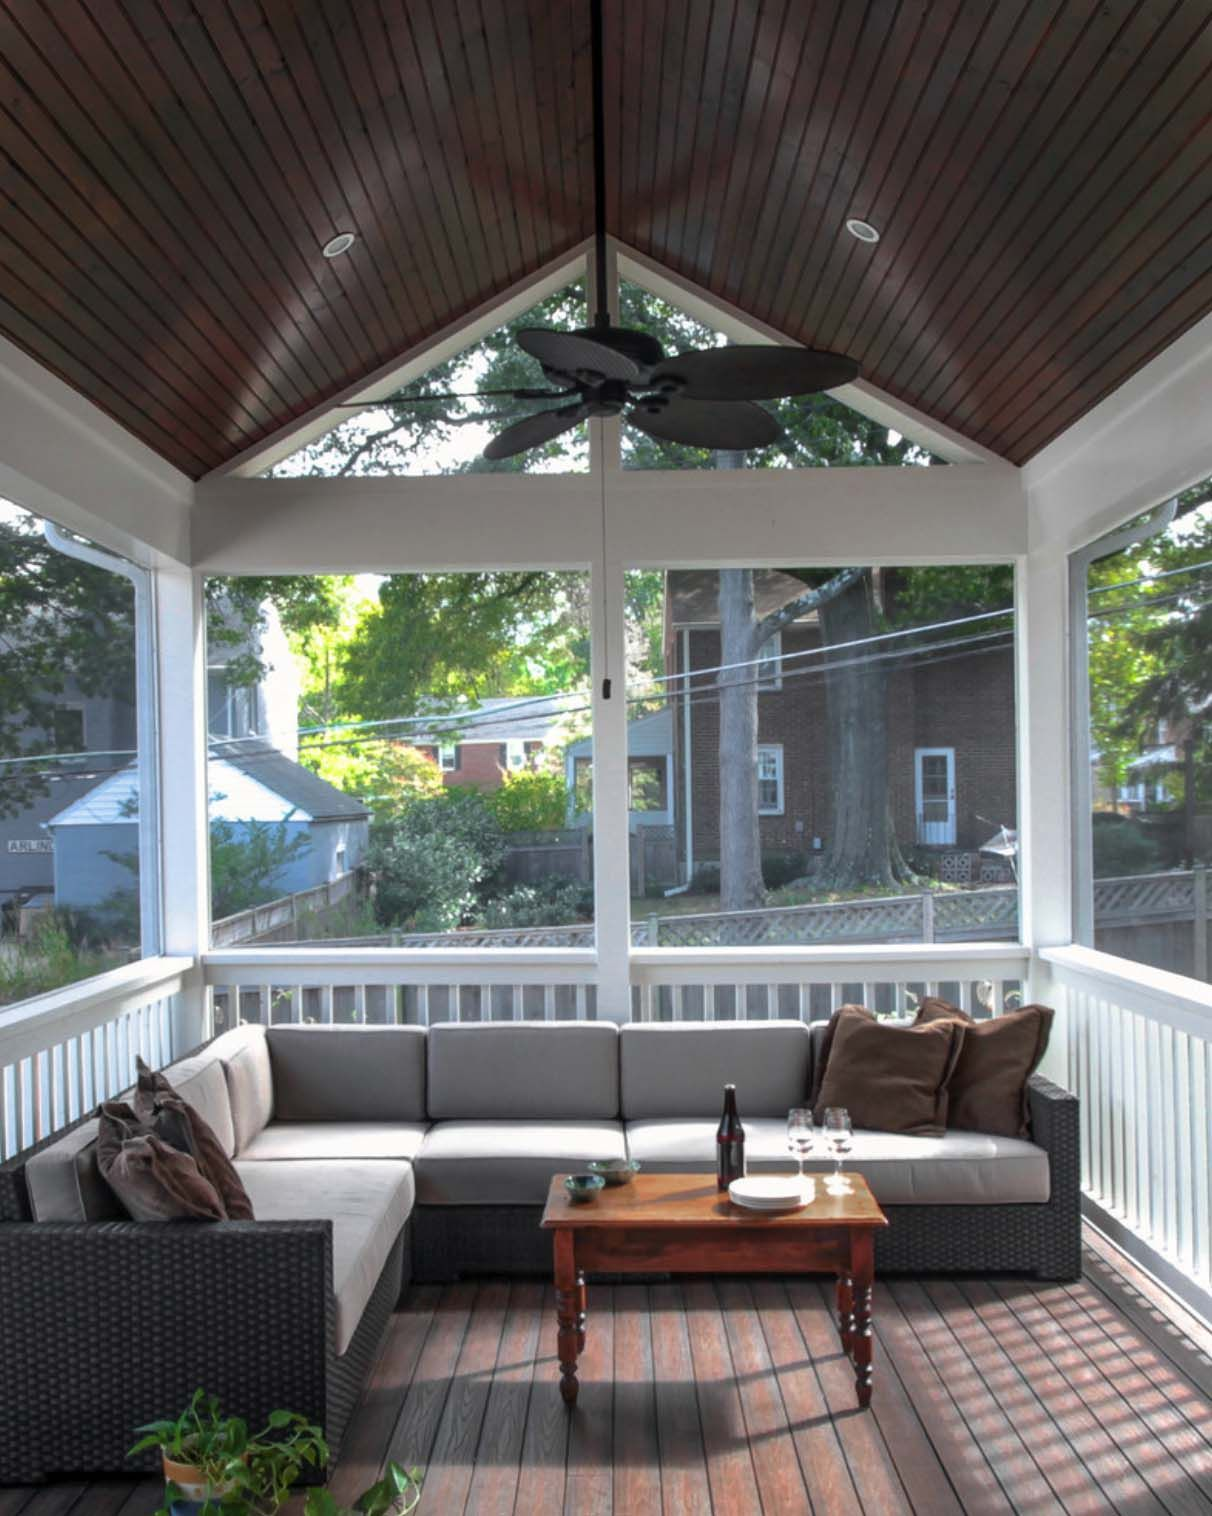 screen home designs screened of disadvantages in and design porch advantages deck the utrails